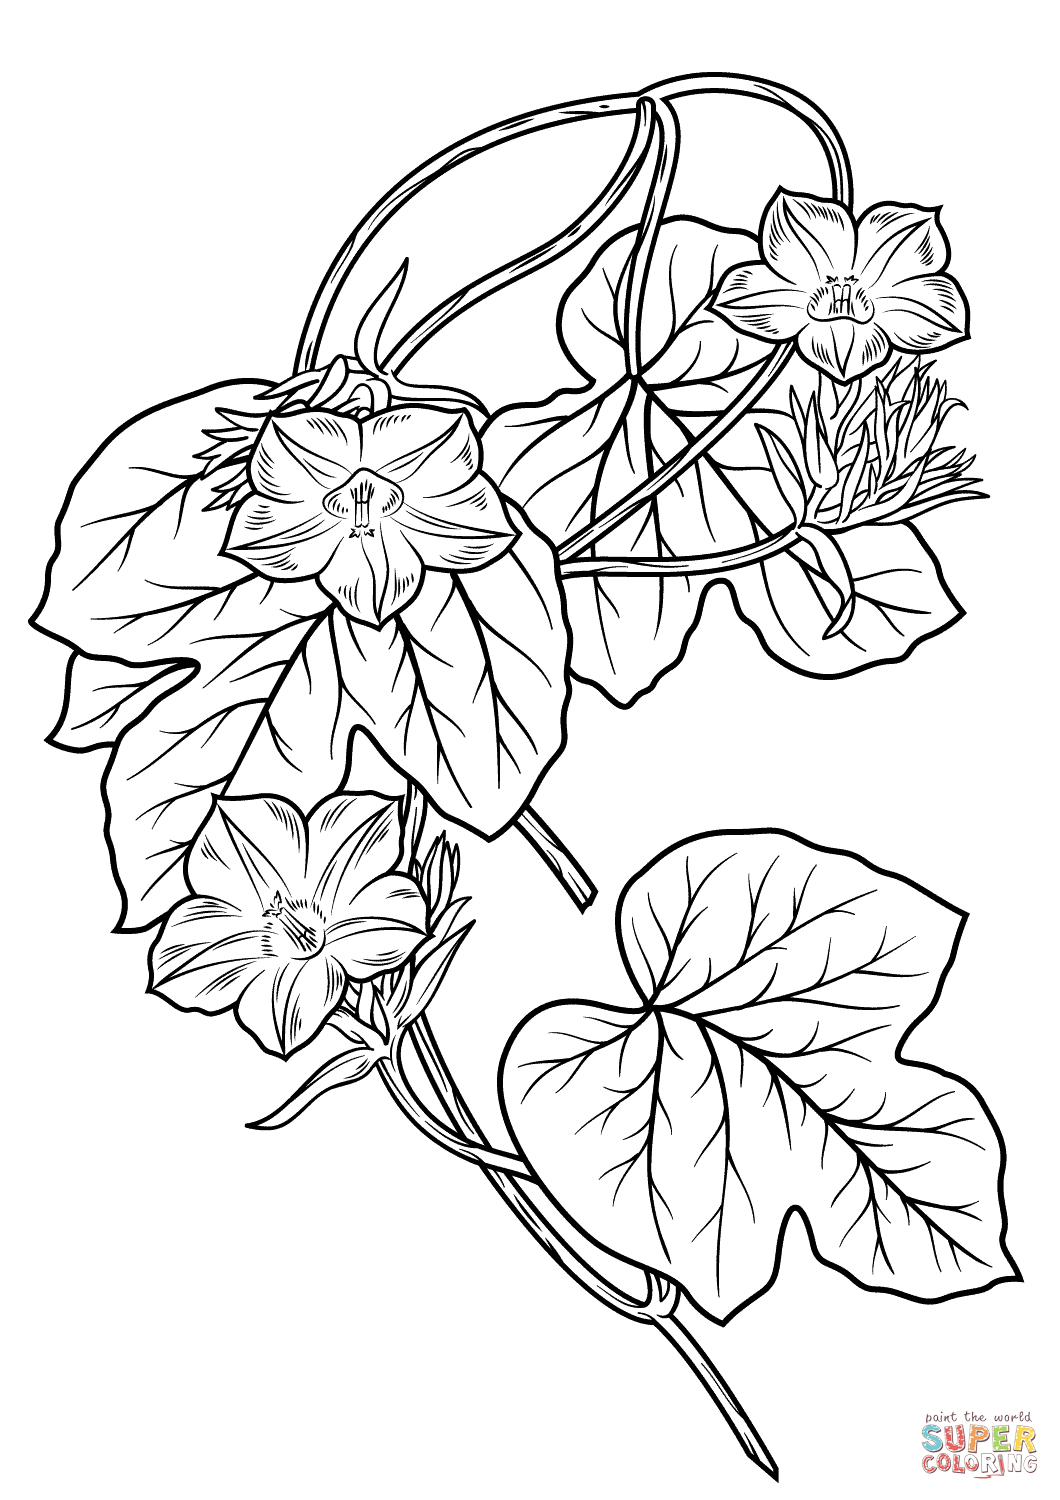 1060x1500 Morning Glory Flower Drawing Morning Glory Flower Coloring Page